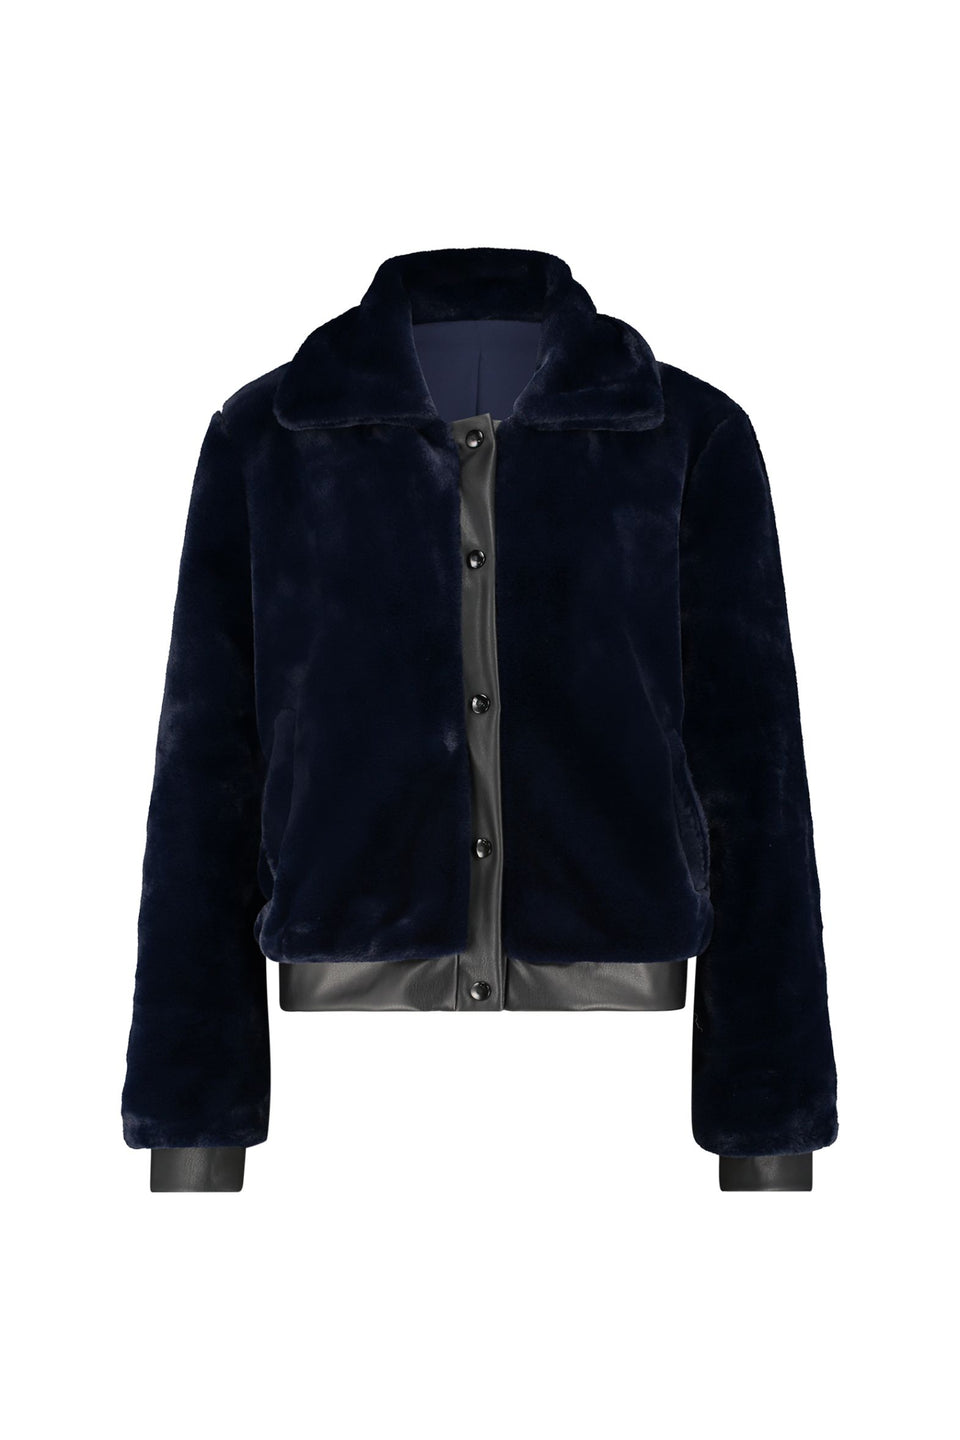 Maddox Coat - Navy